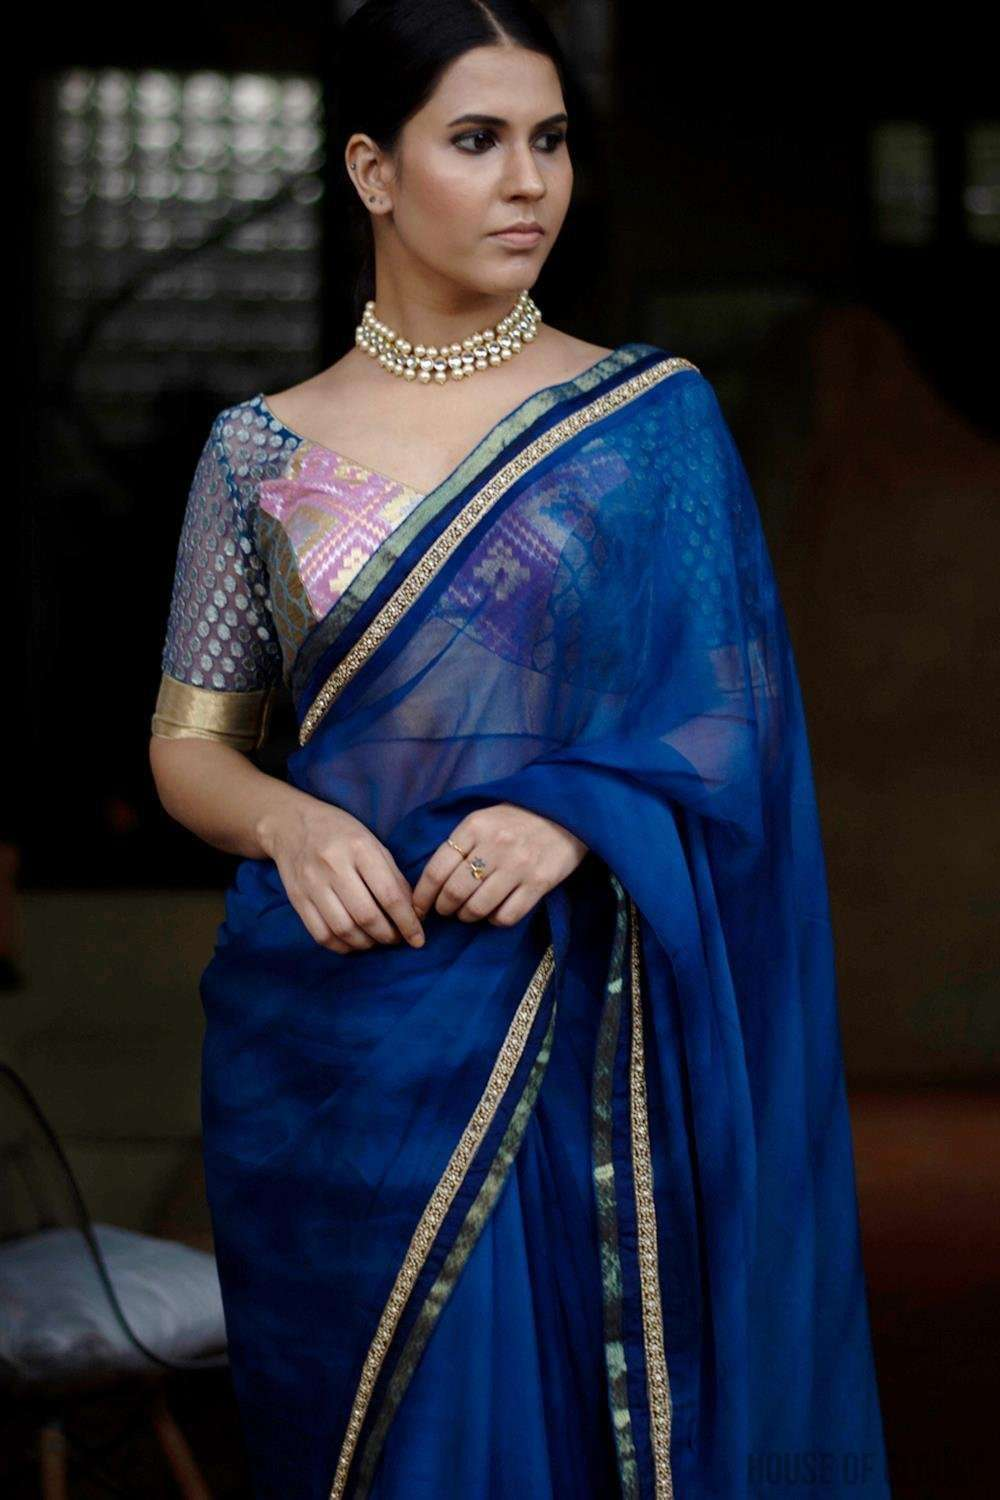 Shibori dyed pure chiffon saree in royal blue, with border of zari, crystals, and gold beads